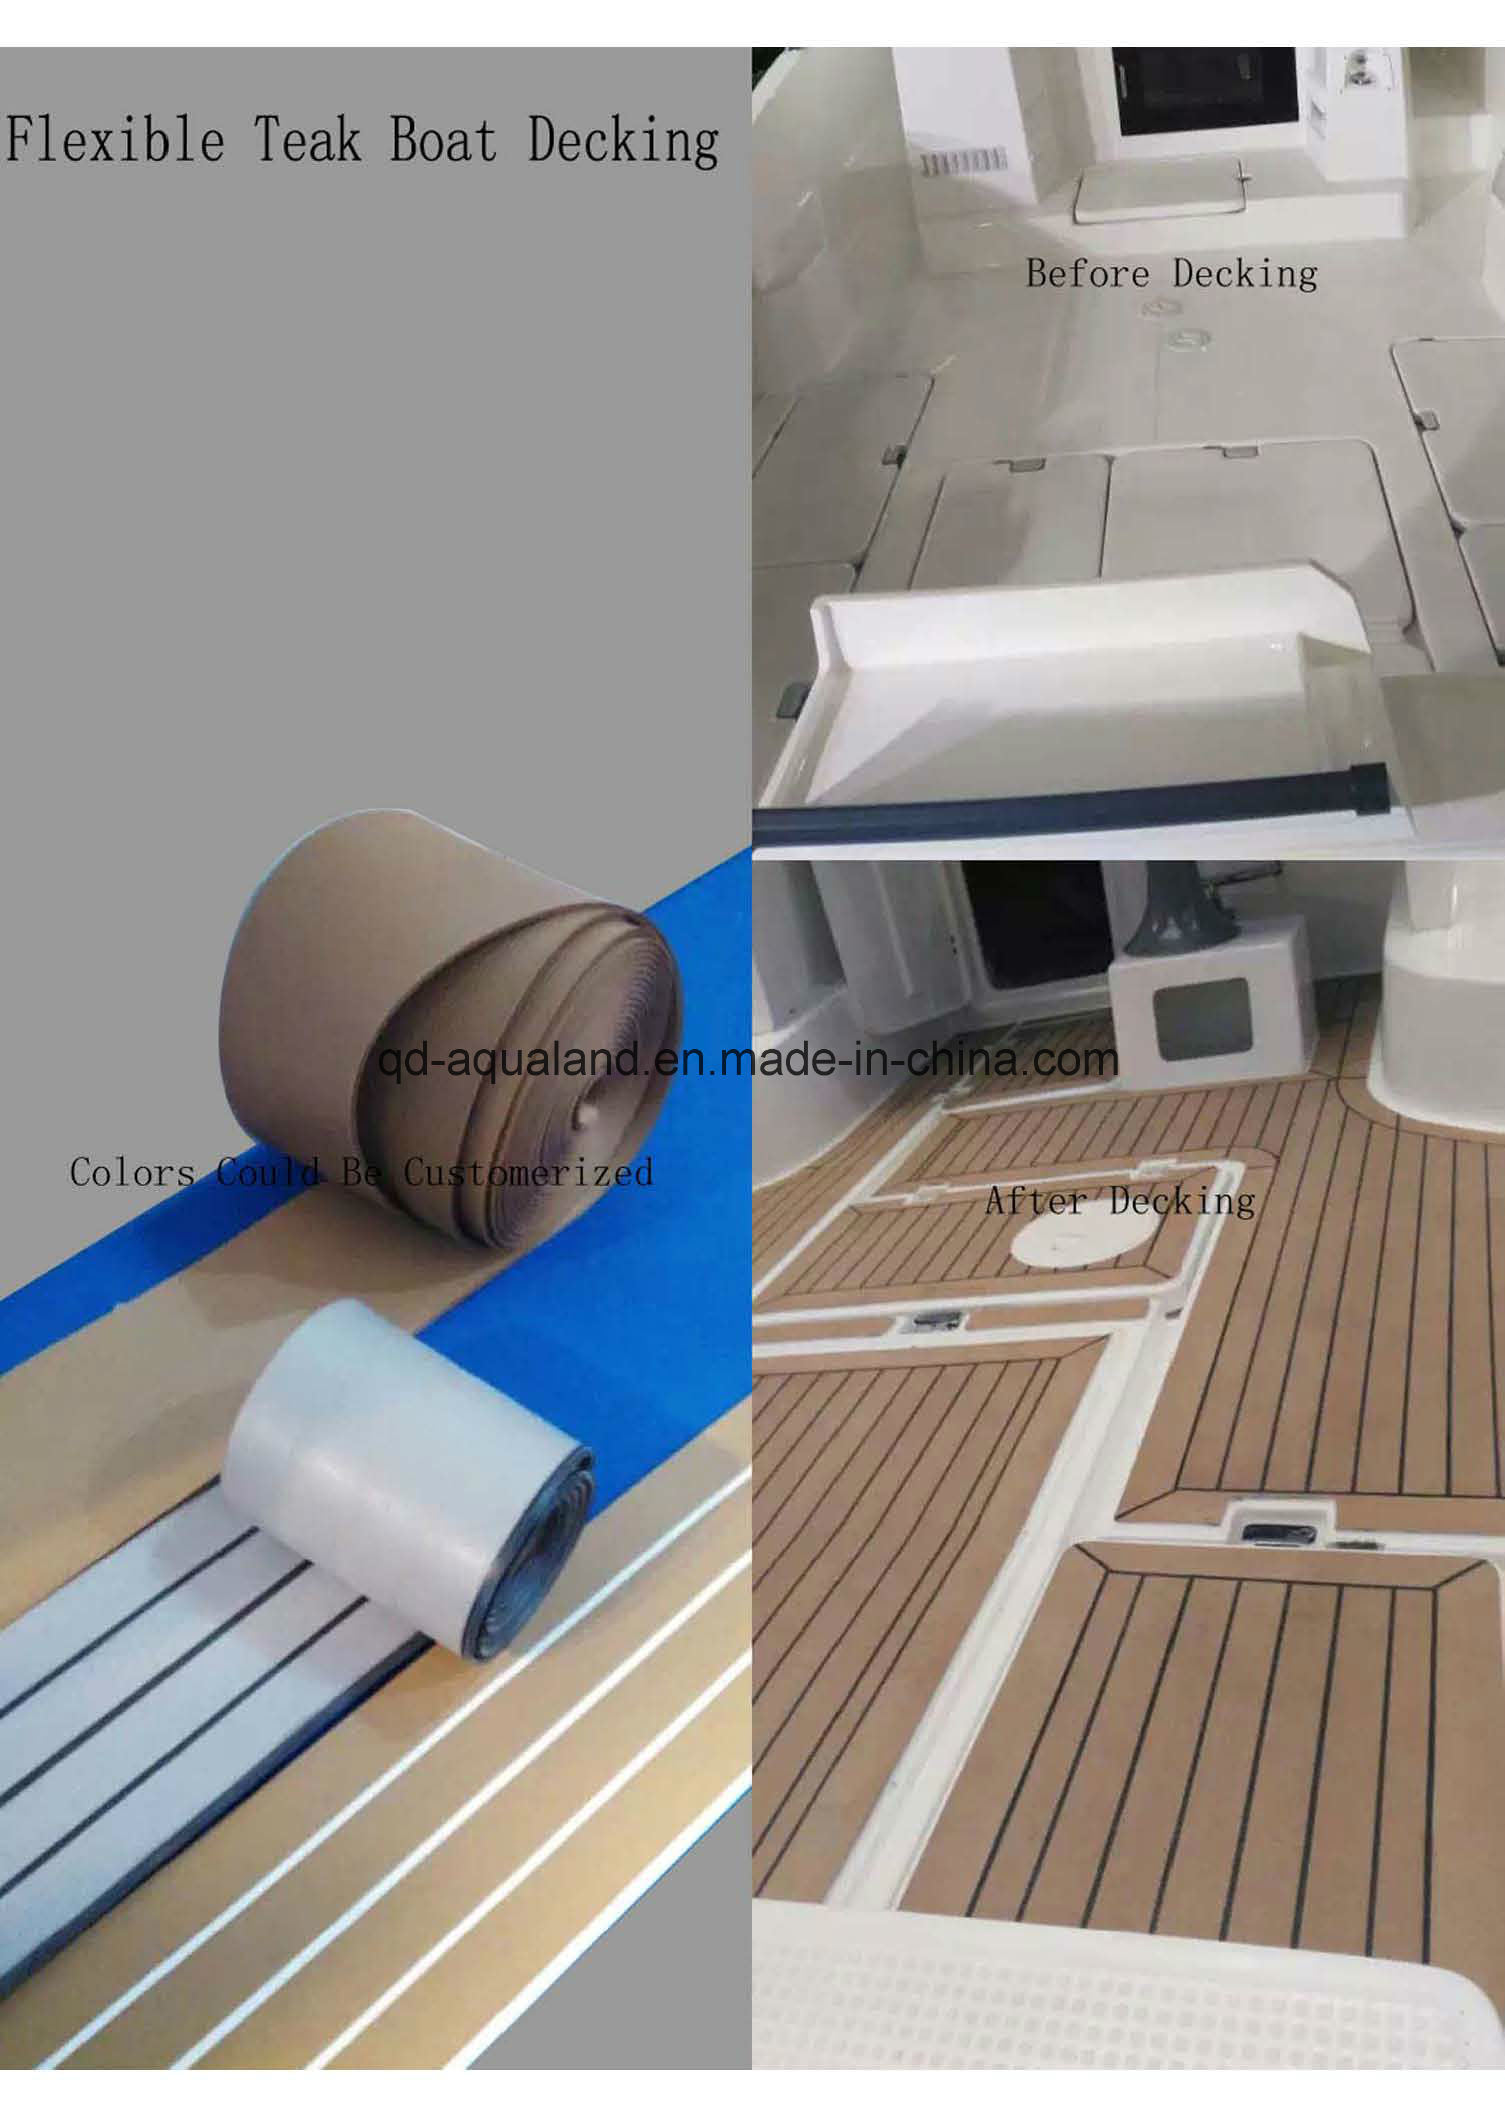 www for cabin amtico teak com aft deck http sweet sea boat floor flooring interior looking ideas ray decking